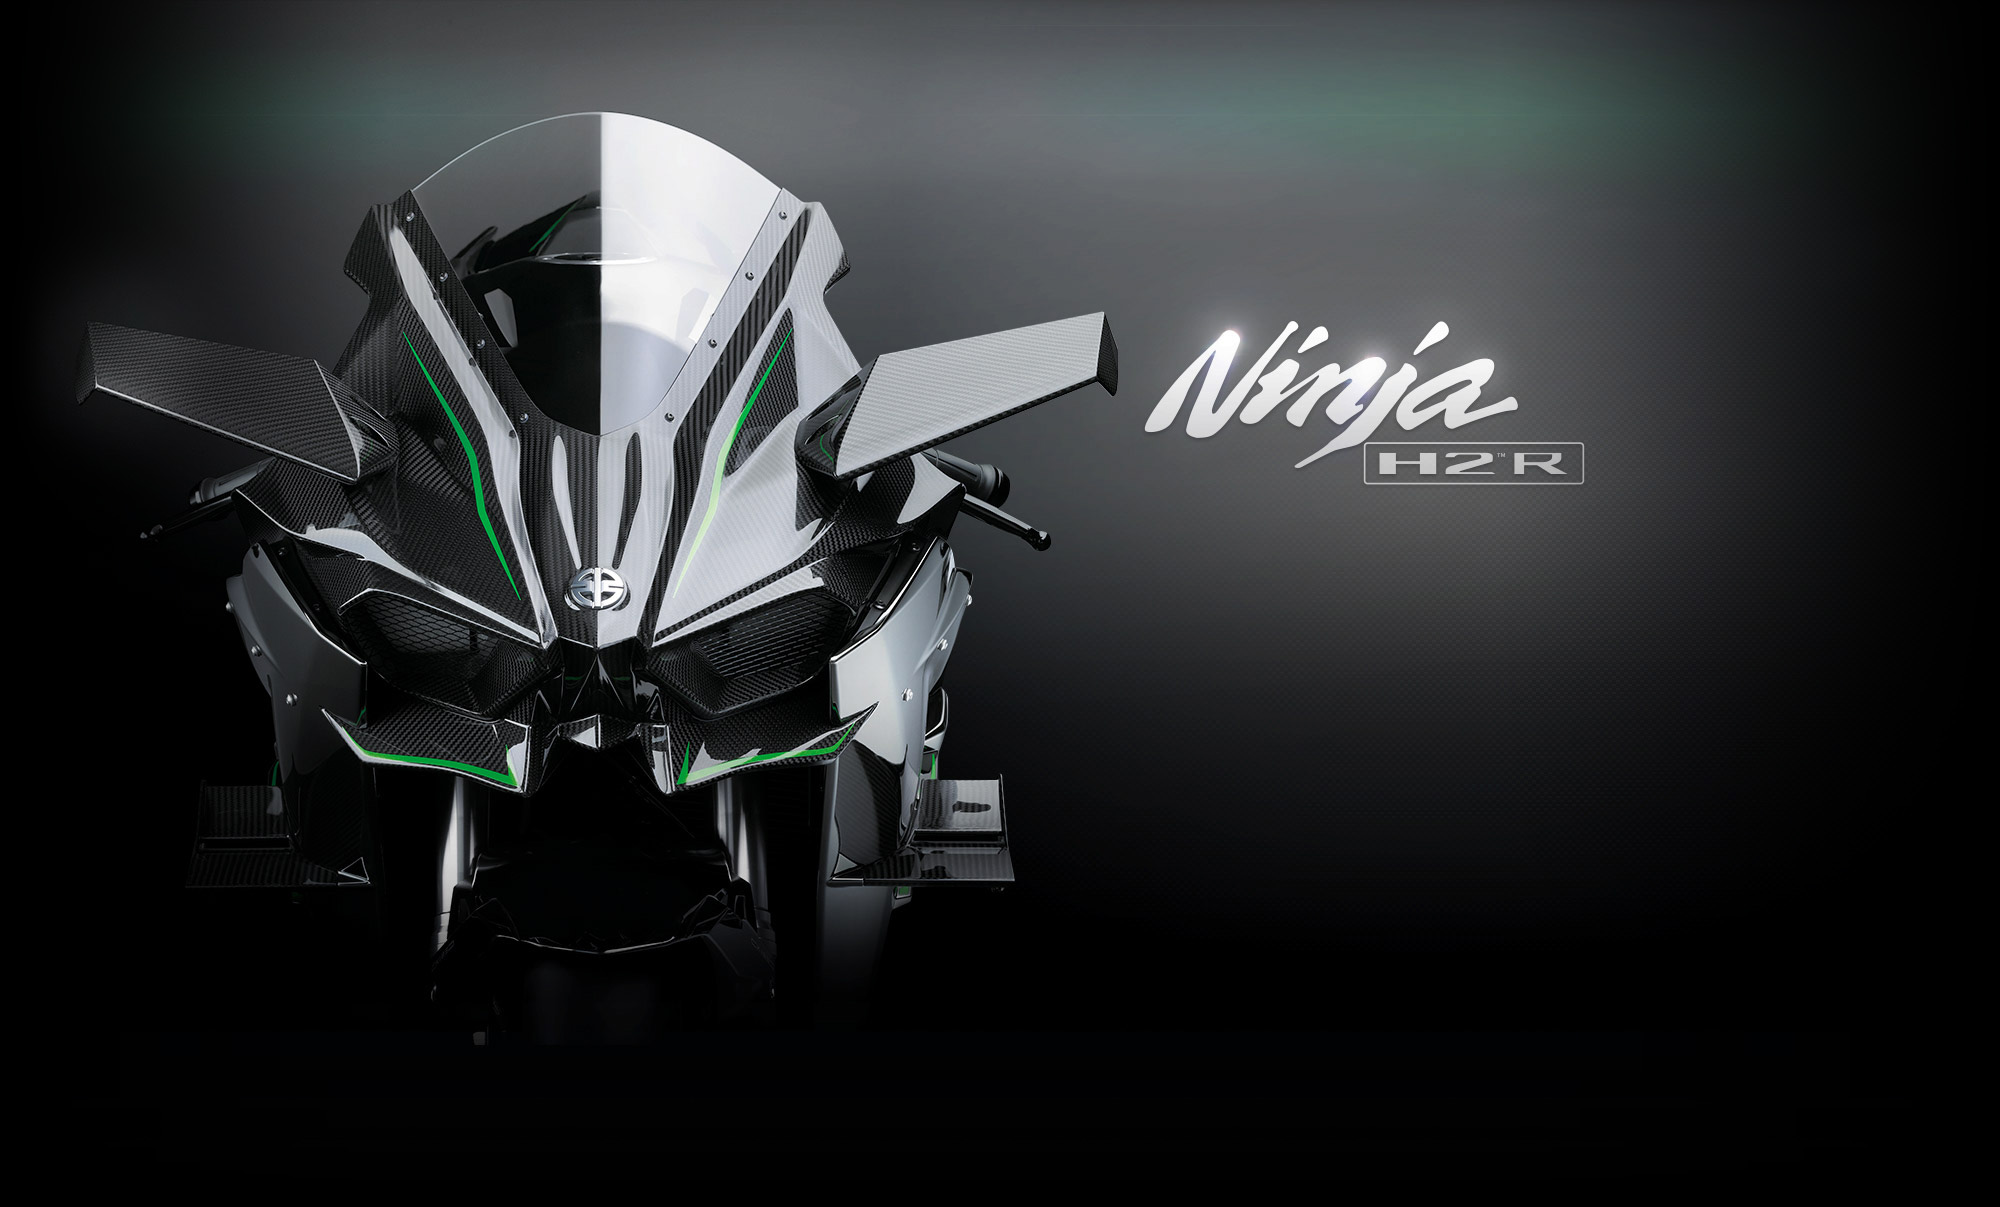 Kawasaki Ninja H2R Front End Looks Exceedingly Evil